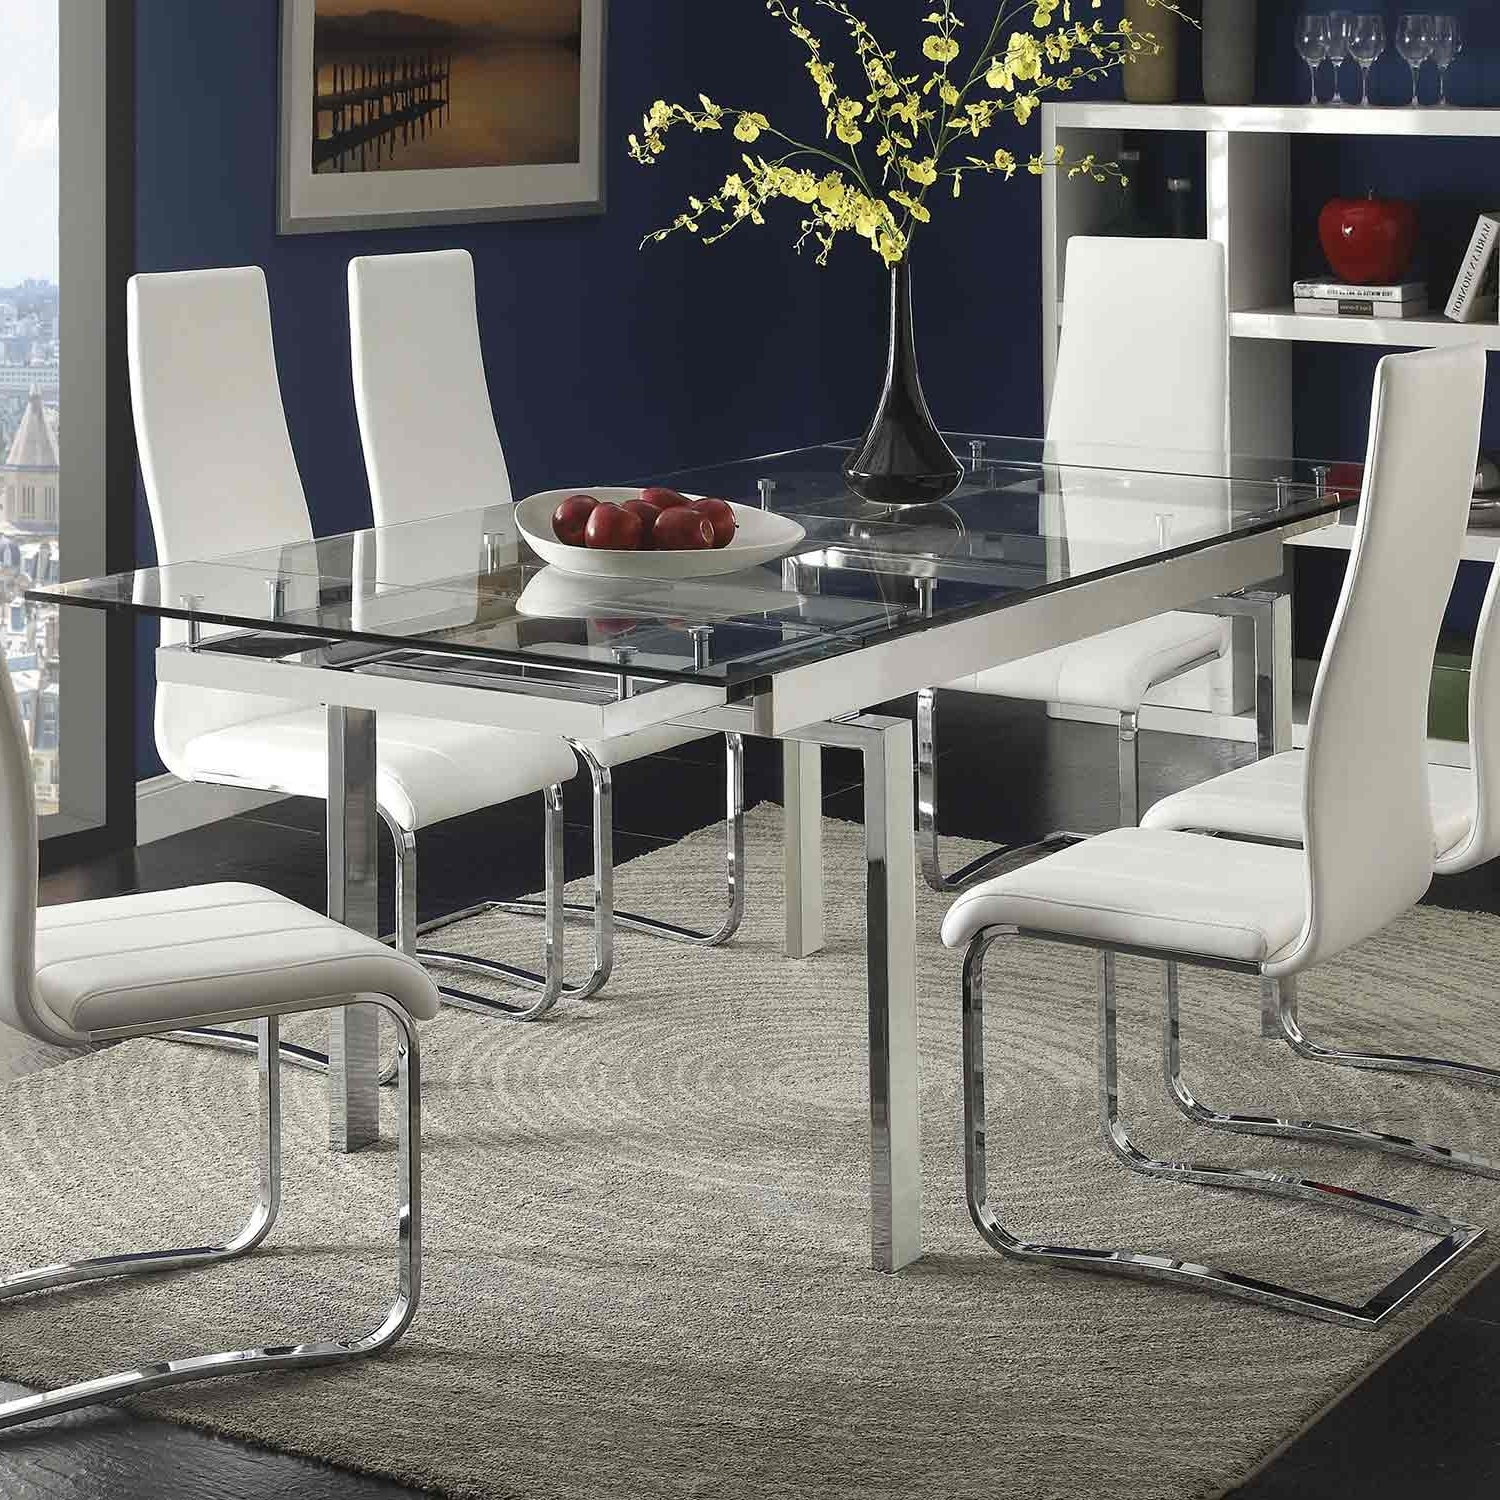 Coaster Wexford Rectangular Expandable Glass Dining Table – Chrome With Regard To Latest Chrome Dining Room Sets (Gallery 8 of 25)